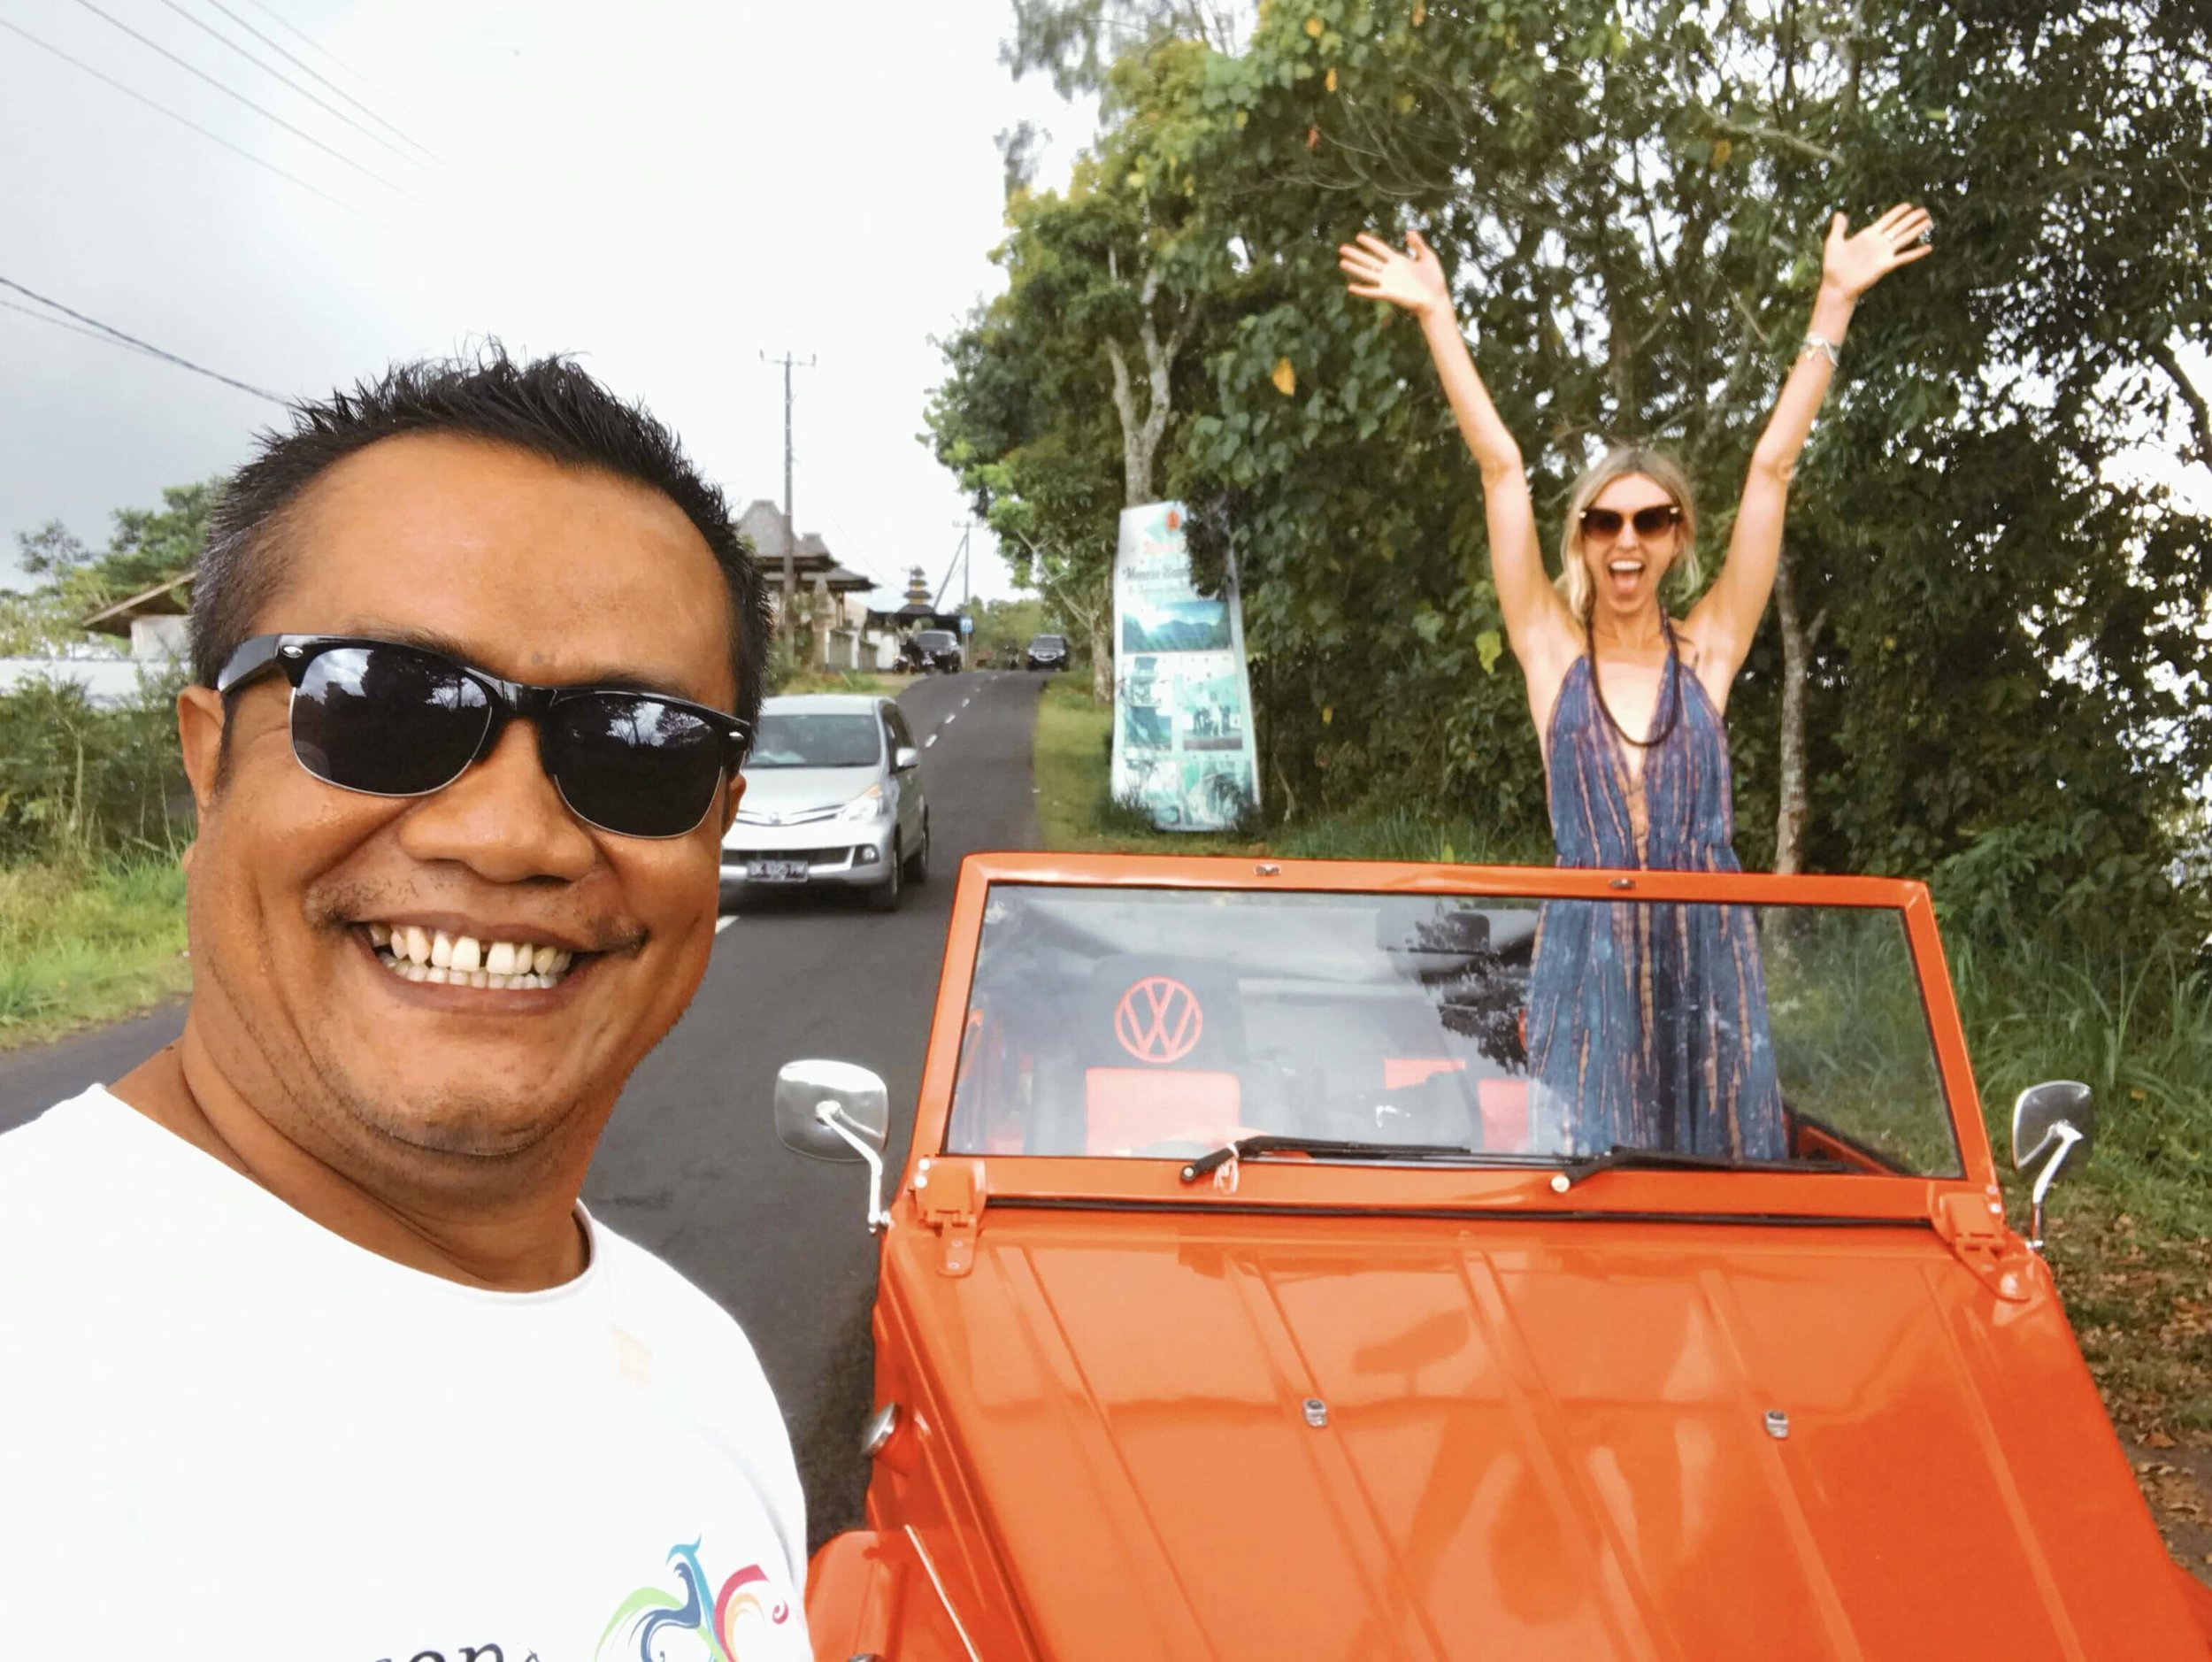 bali day trip car for hire in bali